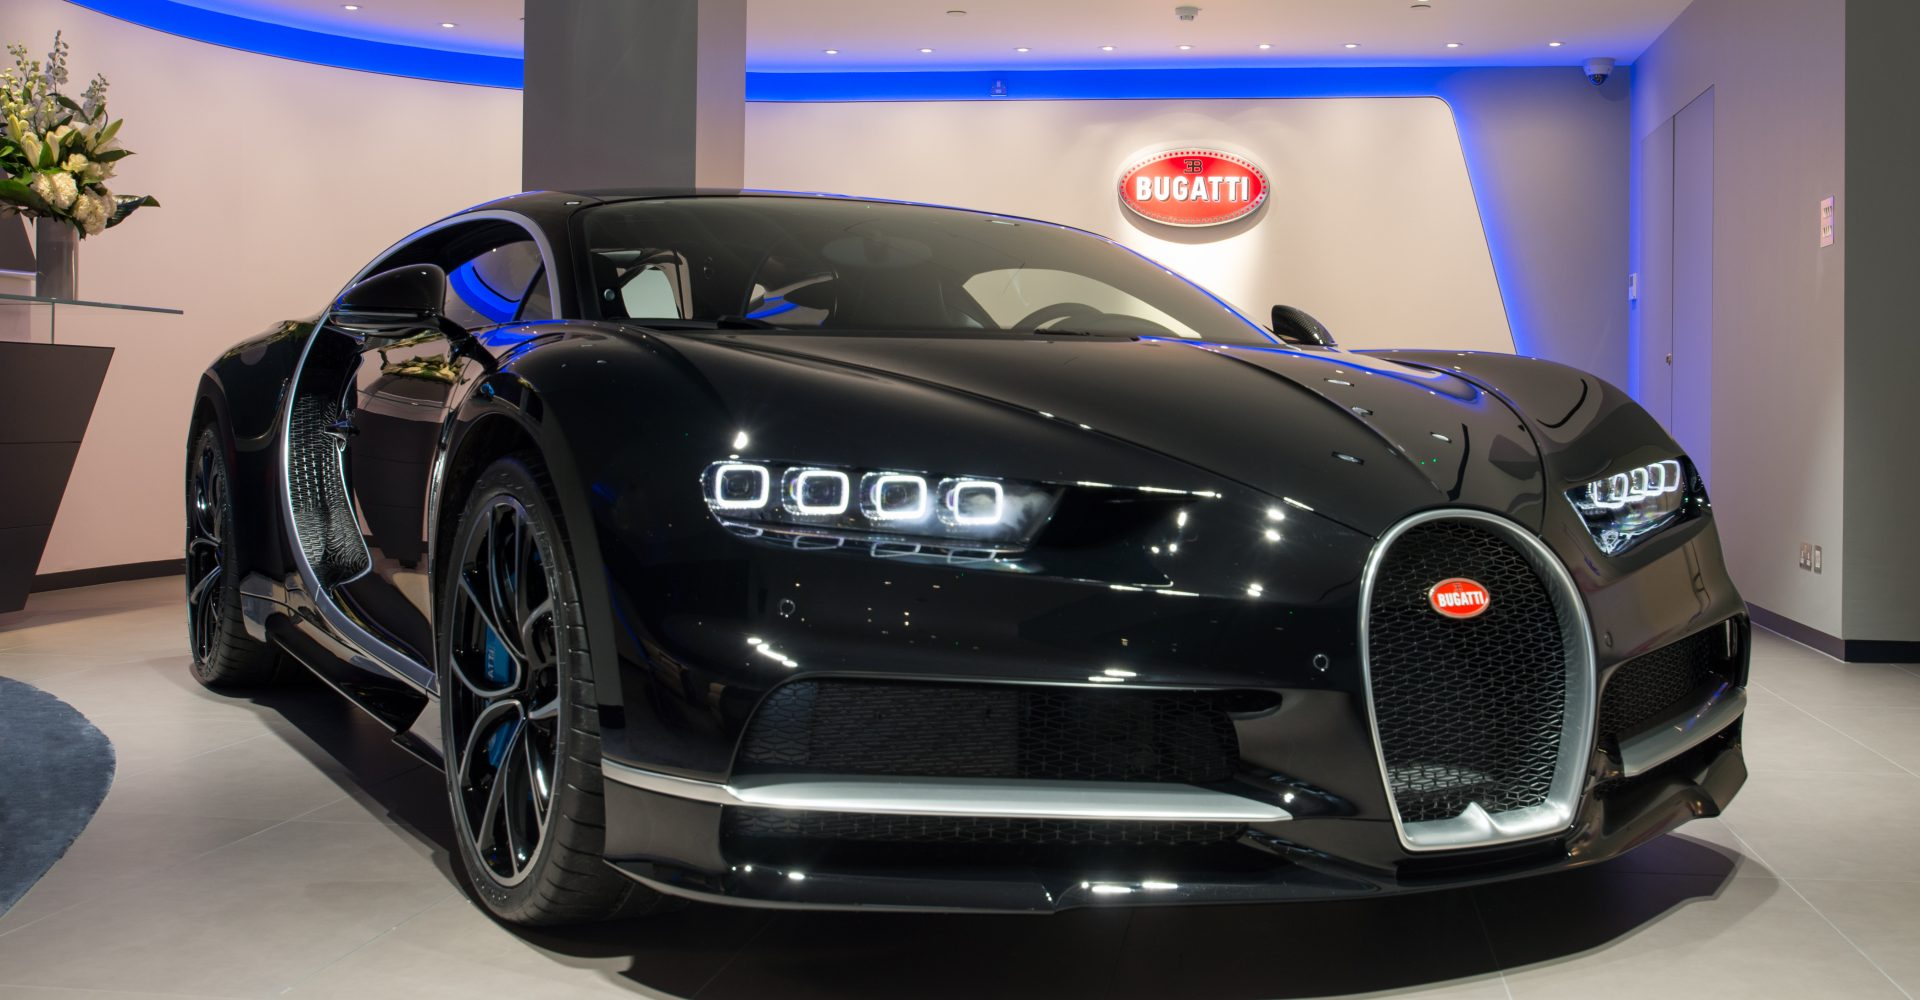 Bugatti Opens New Showroom In London, We Get To Poke Around Its Chiron